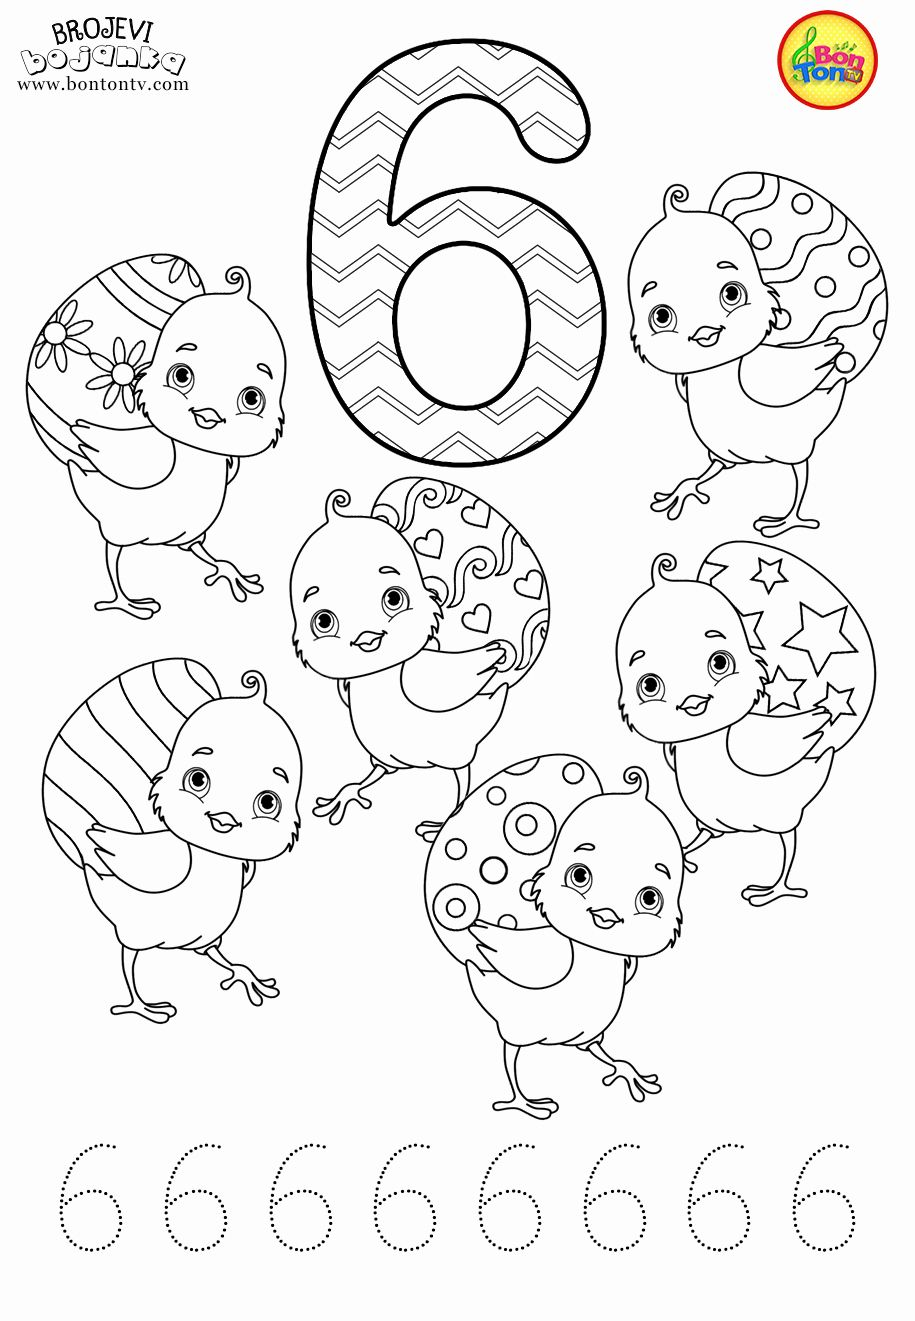 Number Coloring Pages 1 10 Pdf New Free Preschool Printables Easter Number Traci Free Preschool Printables Kids Learning Numbers Color Worksheets For Preschool